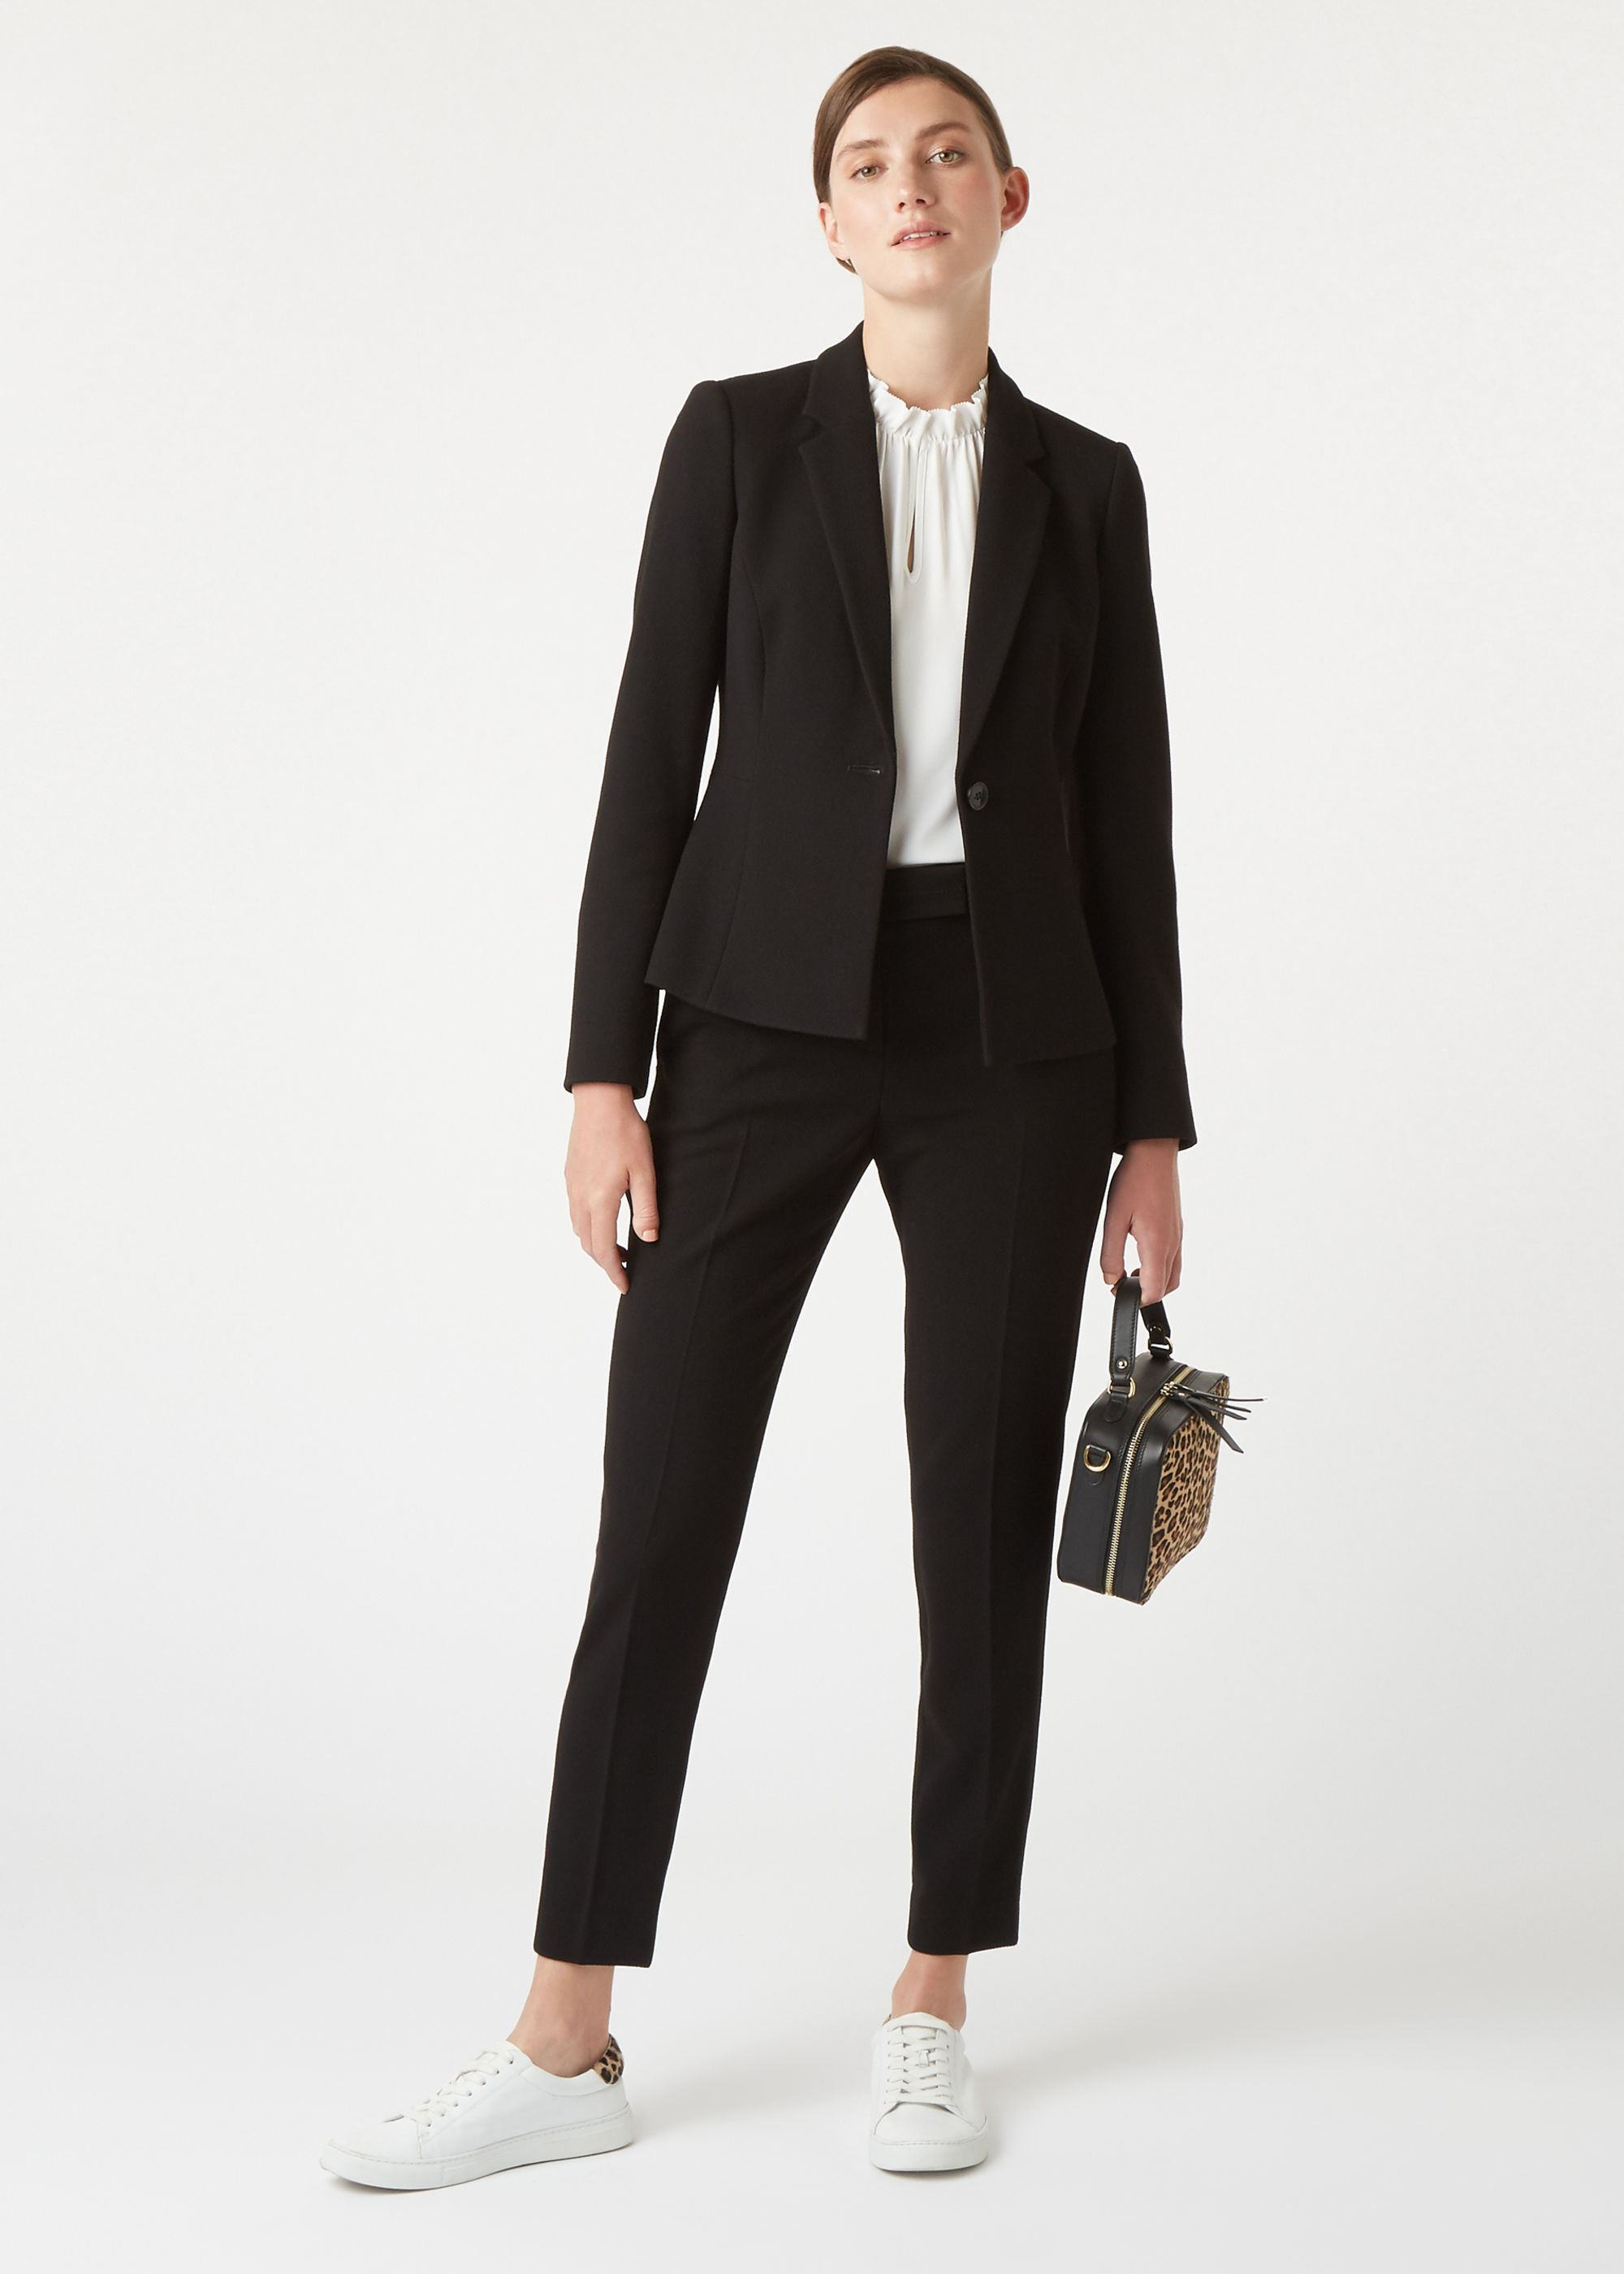 Work Suits